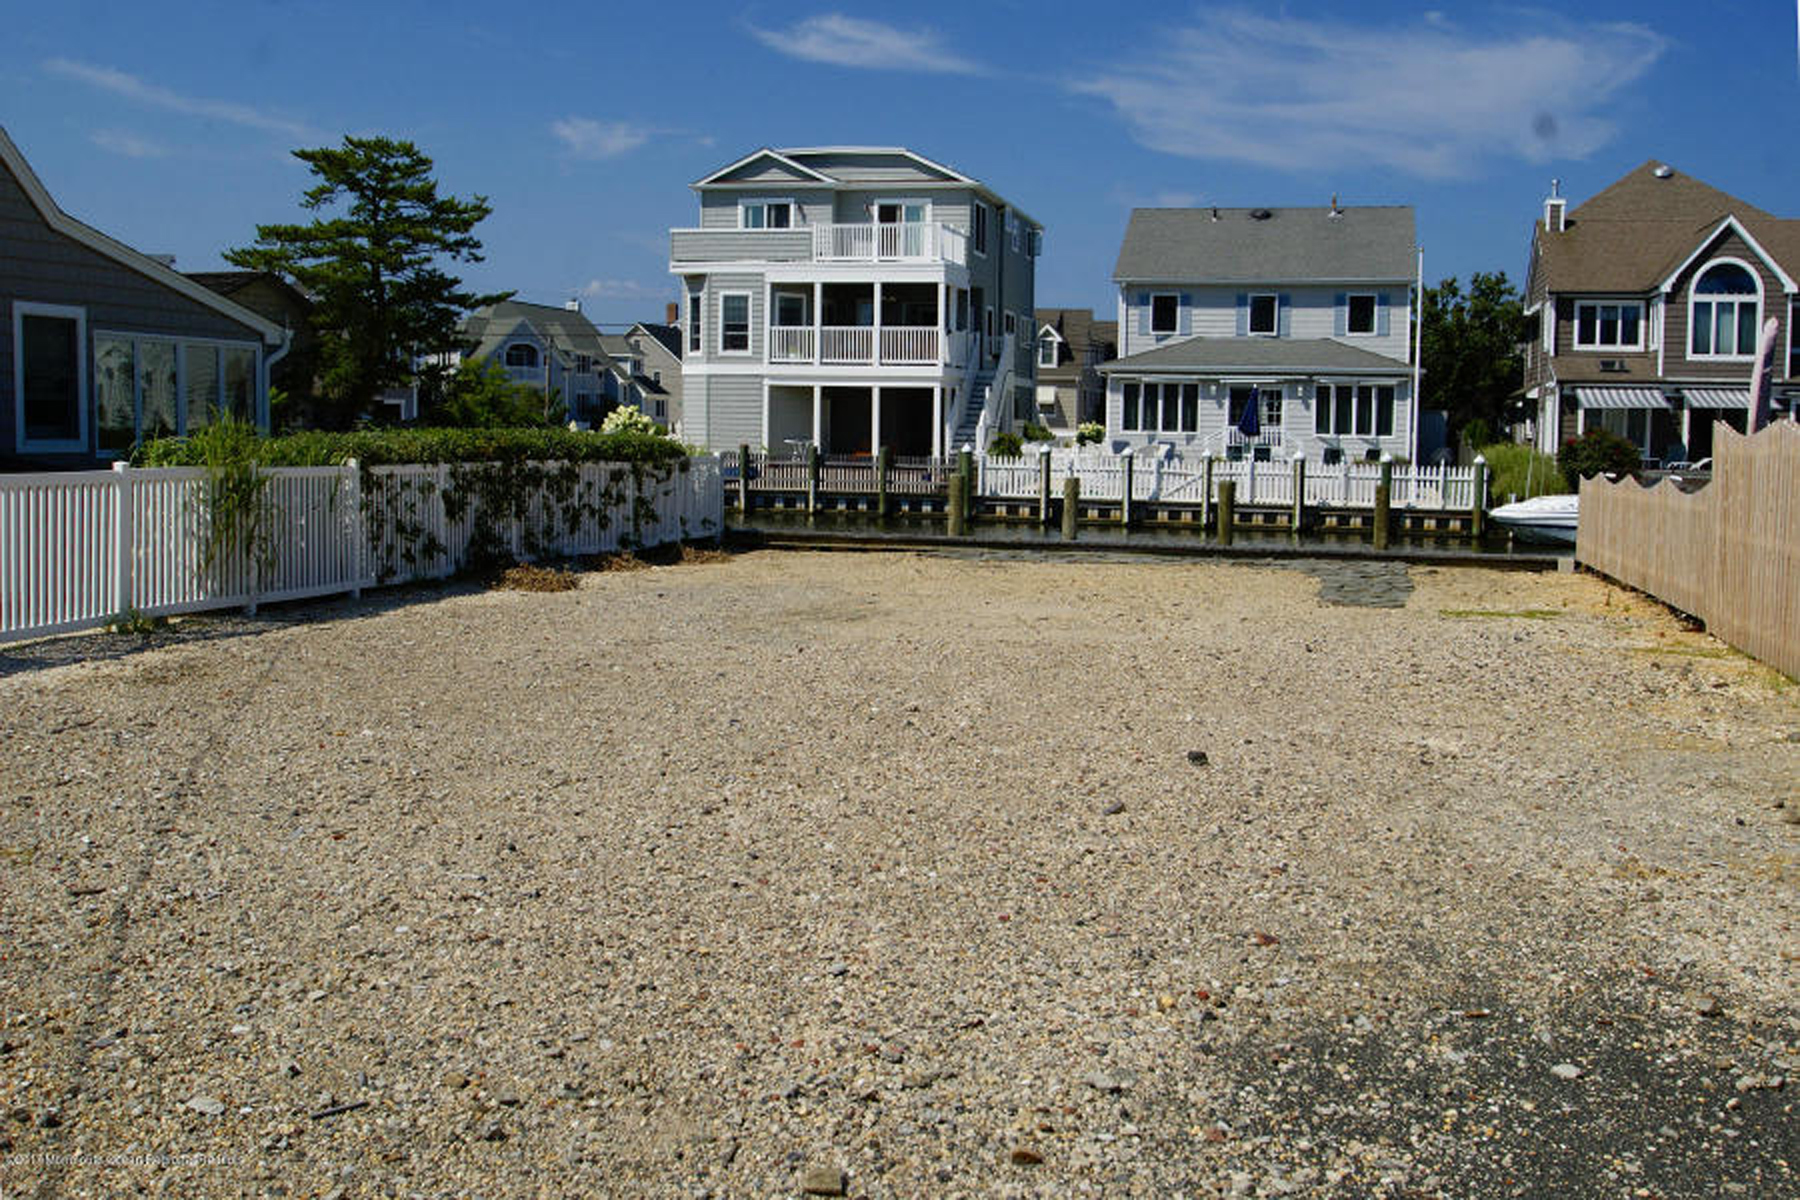 Terreno para Venda às Normandy Beach Waterfront Lot 222 Norman Court, Normandy Beach, Nova Jersey 08739 Estados Unidos